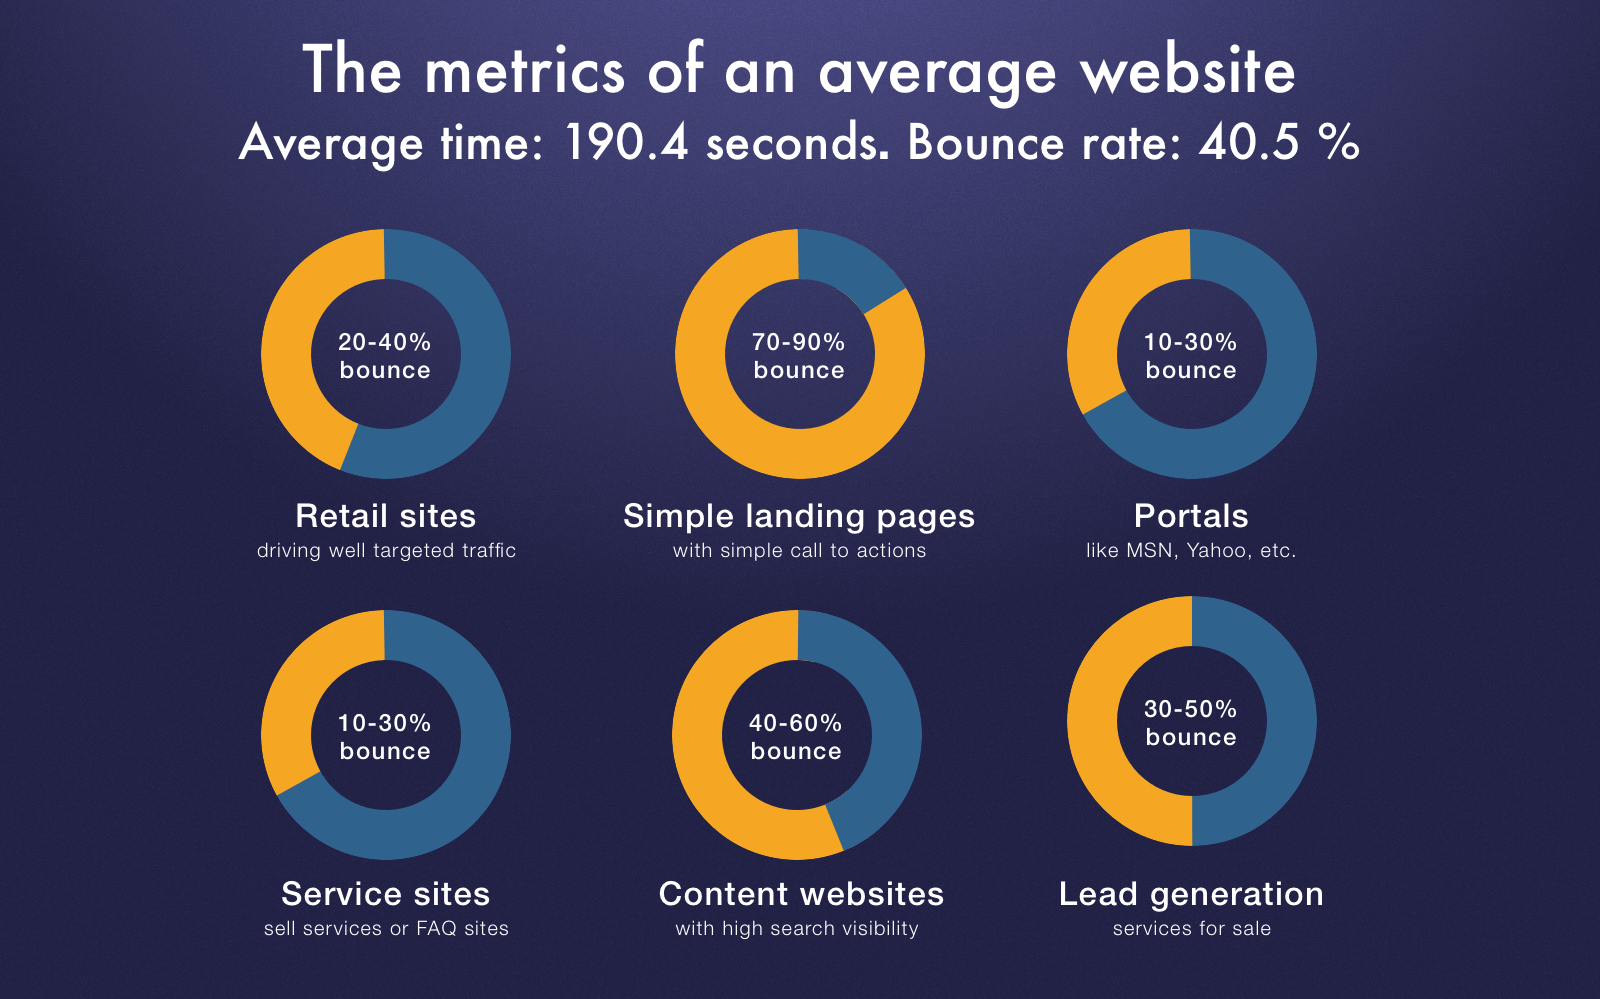 Bounce rate and website type